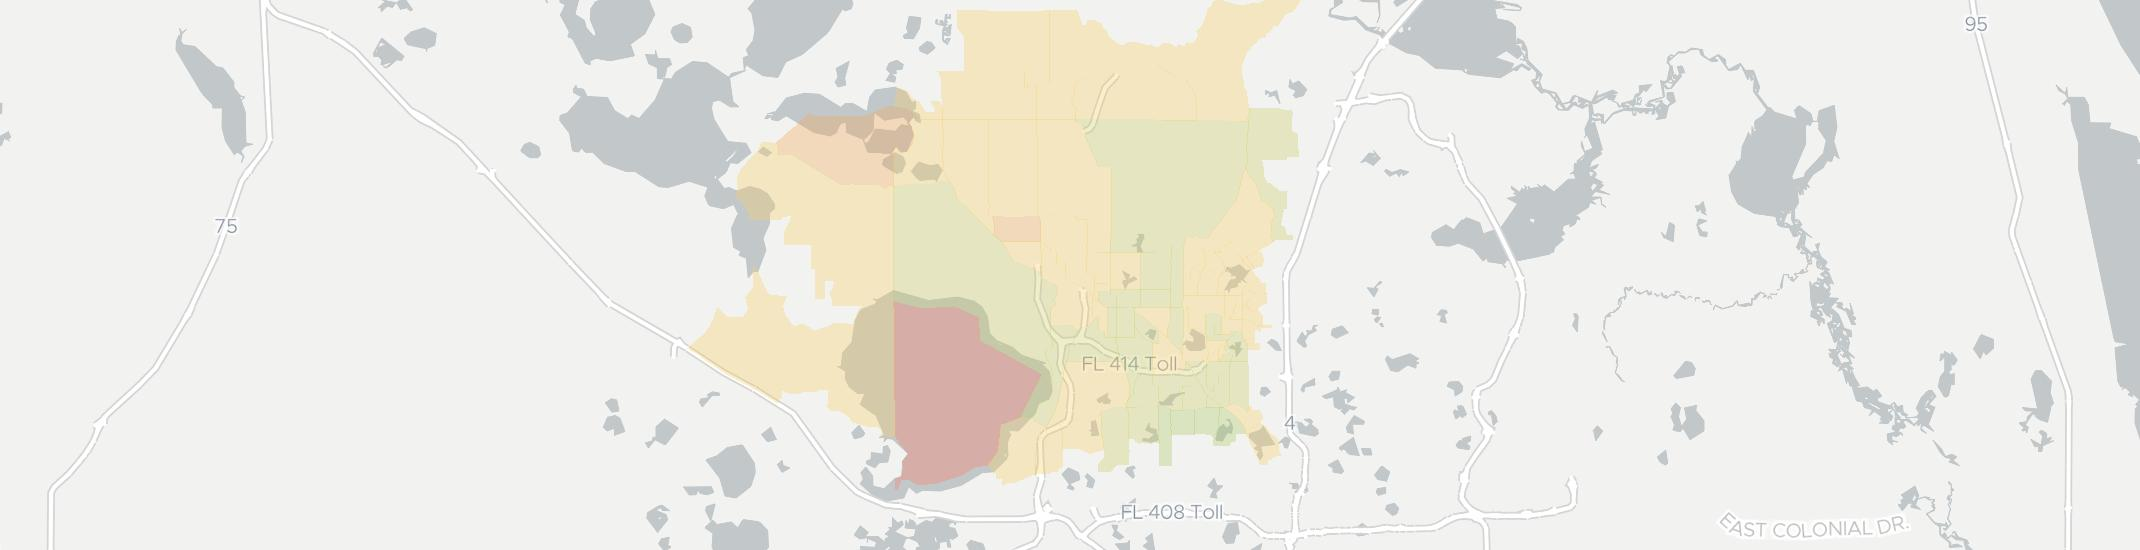 Apopka Internet Competition Map. Click for interactive map.